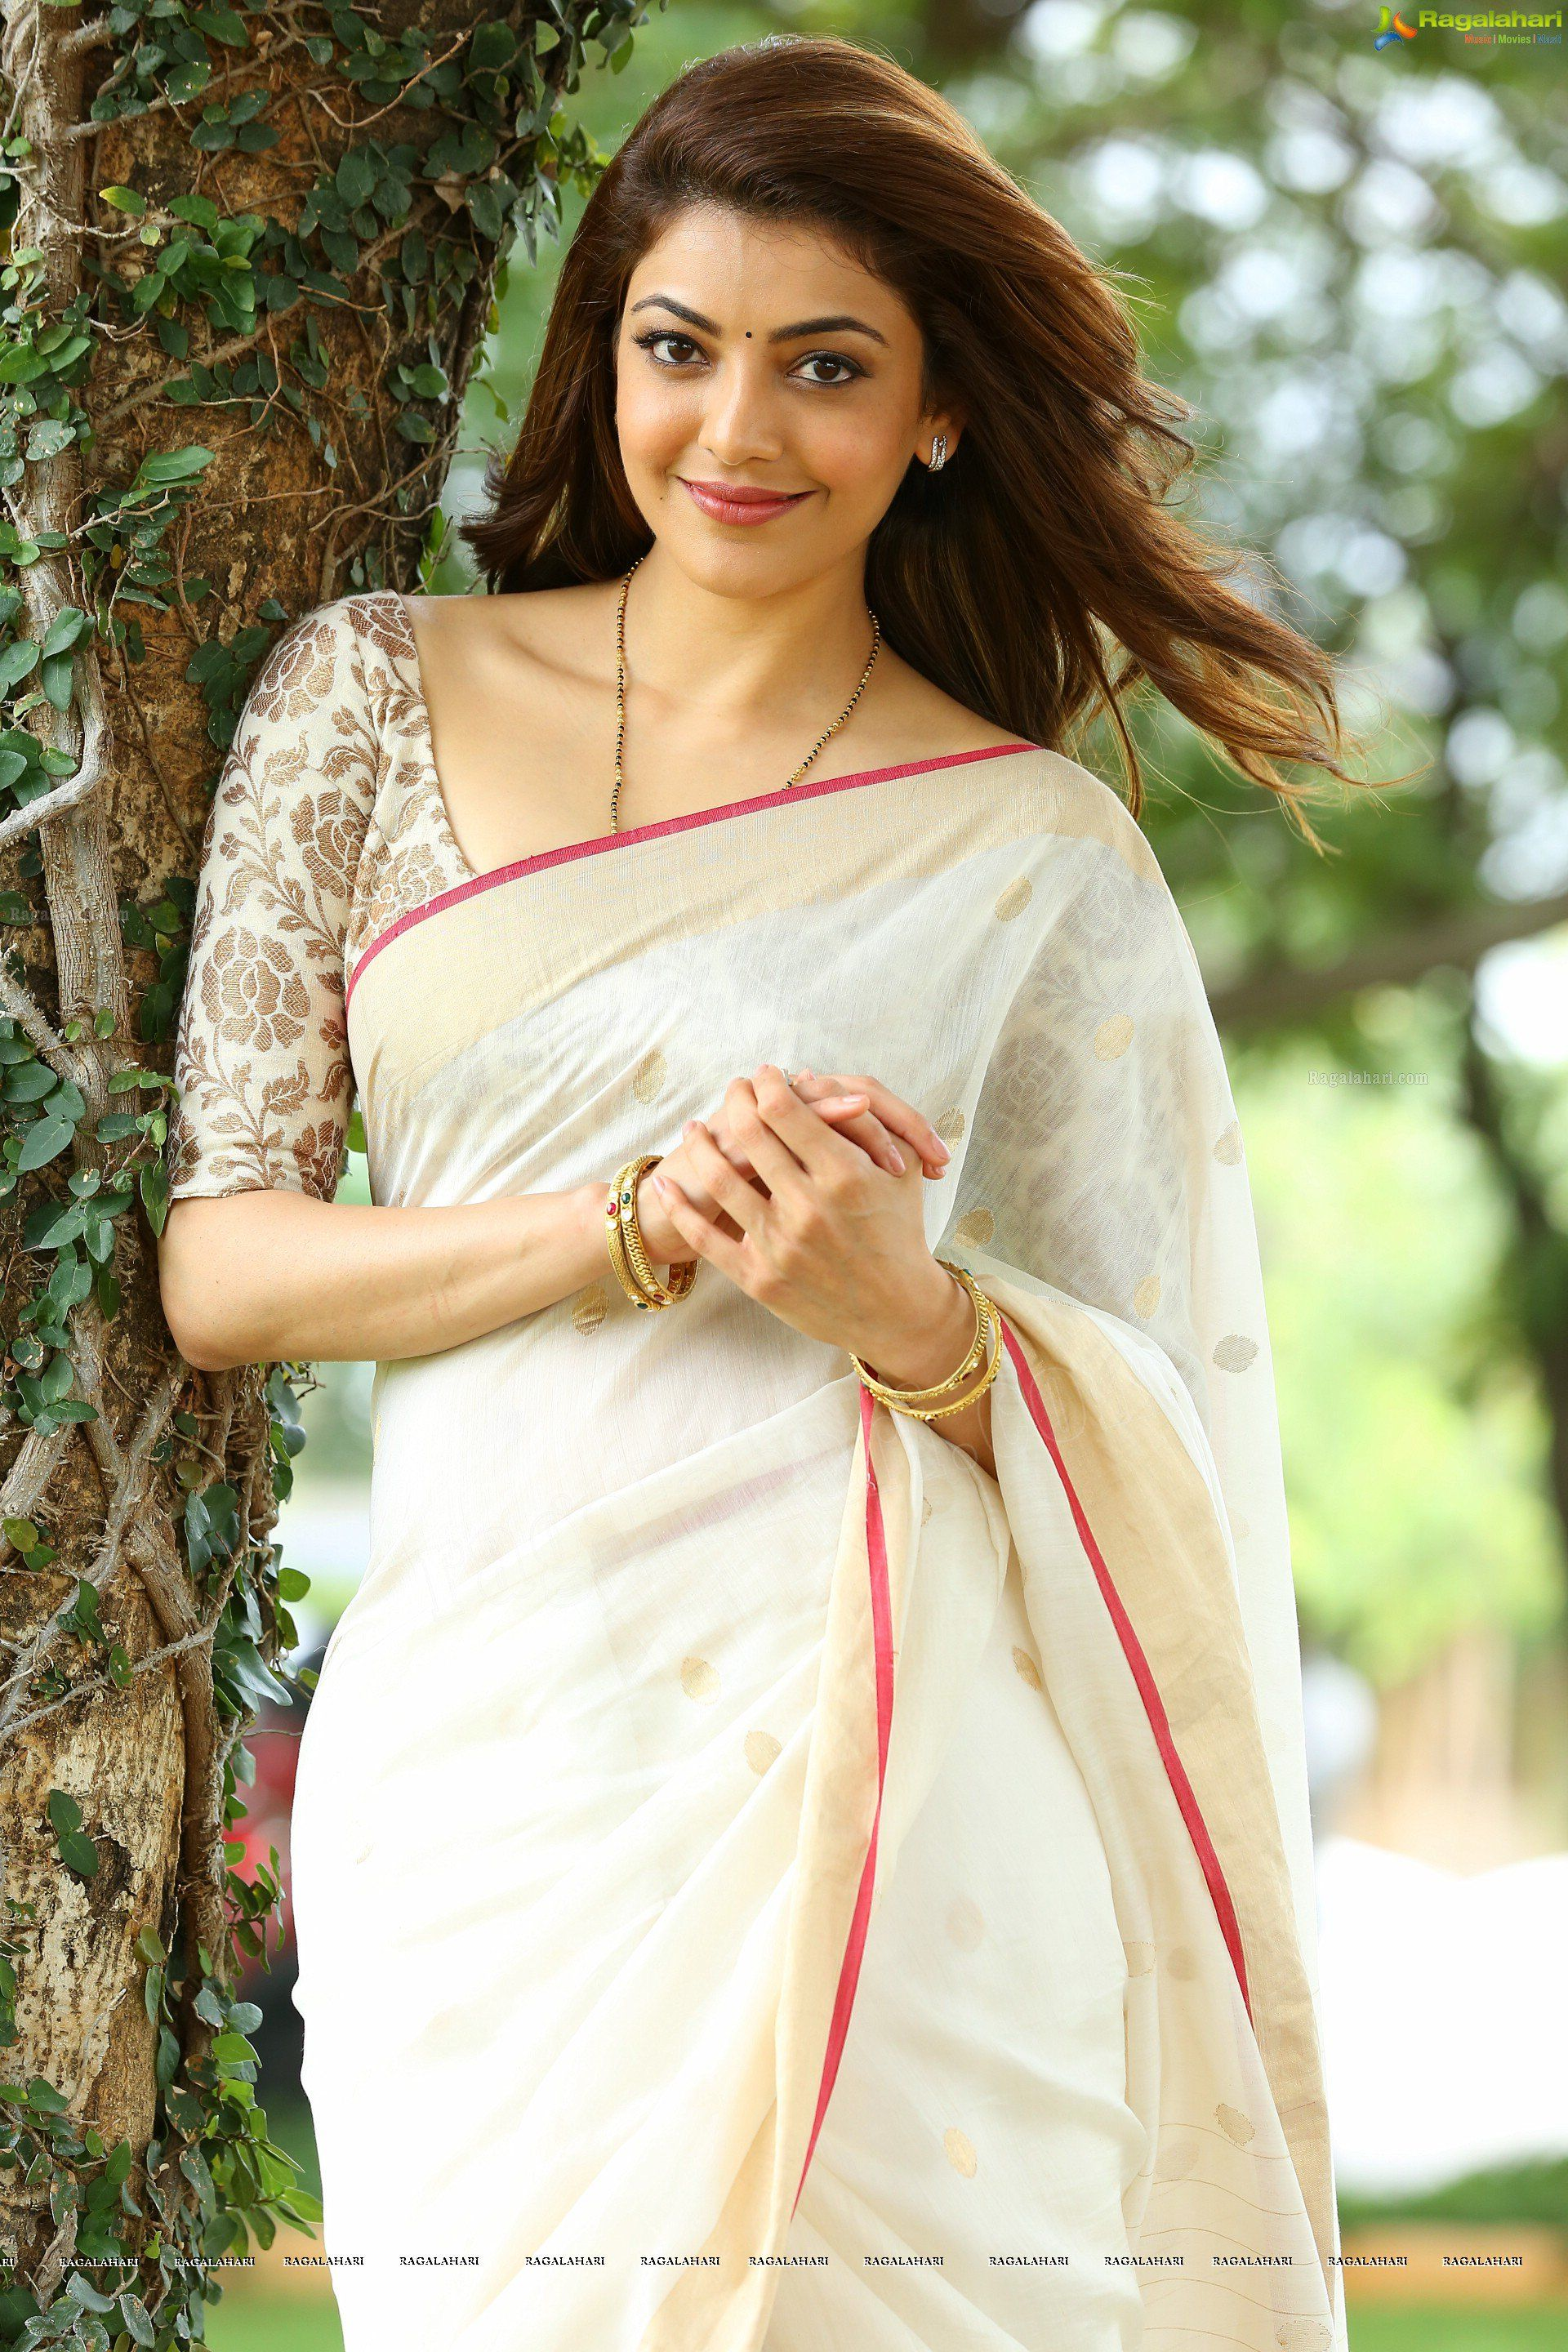 Check Out Exclusive Unseen Hd Photos Of Heroine Kajal -1346